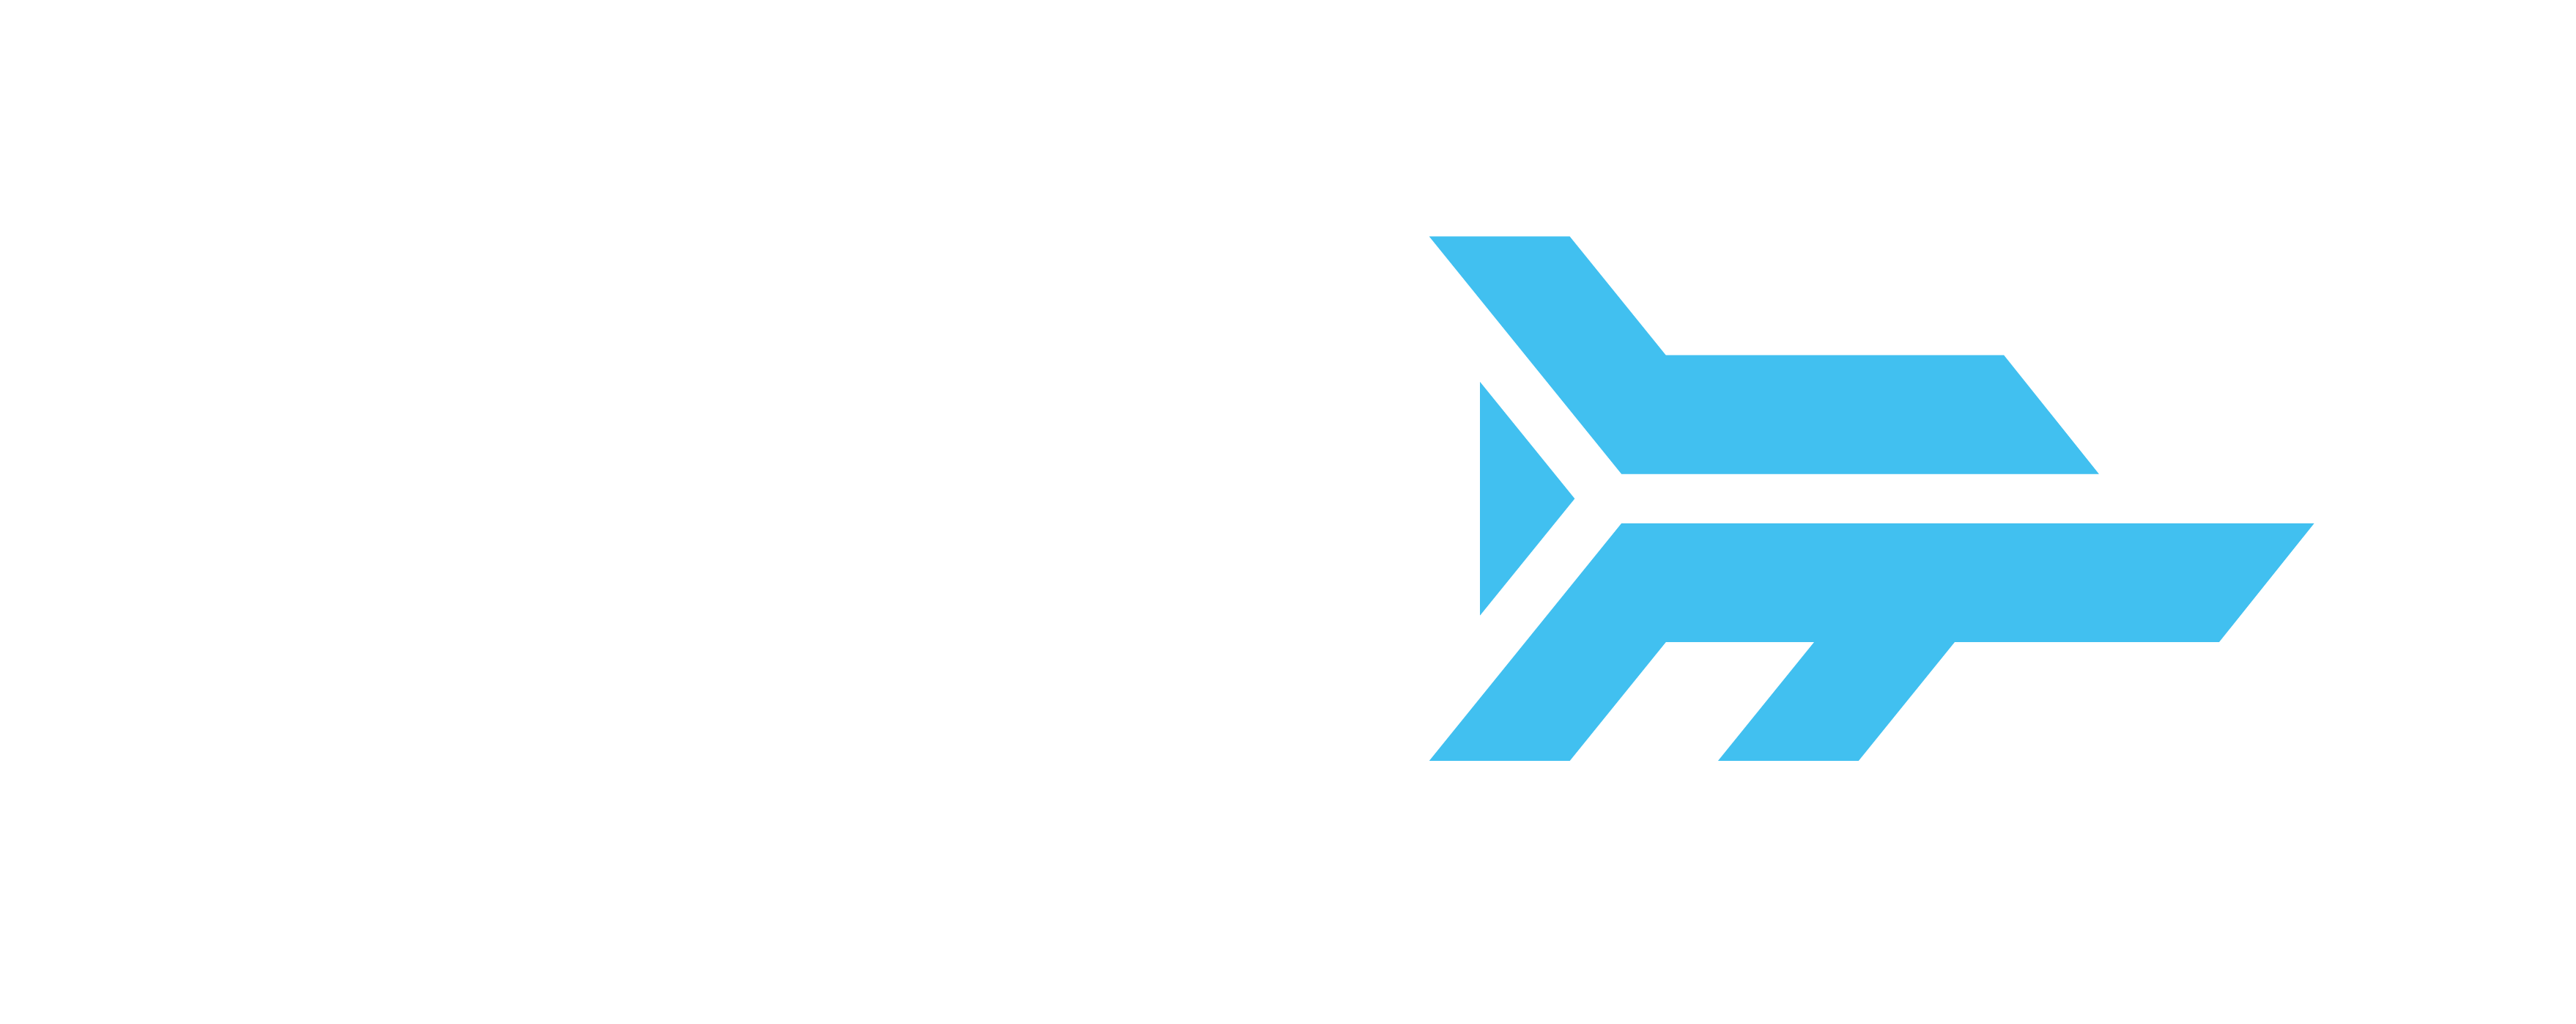 Zero Latency DFW